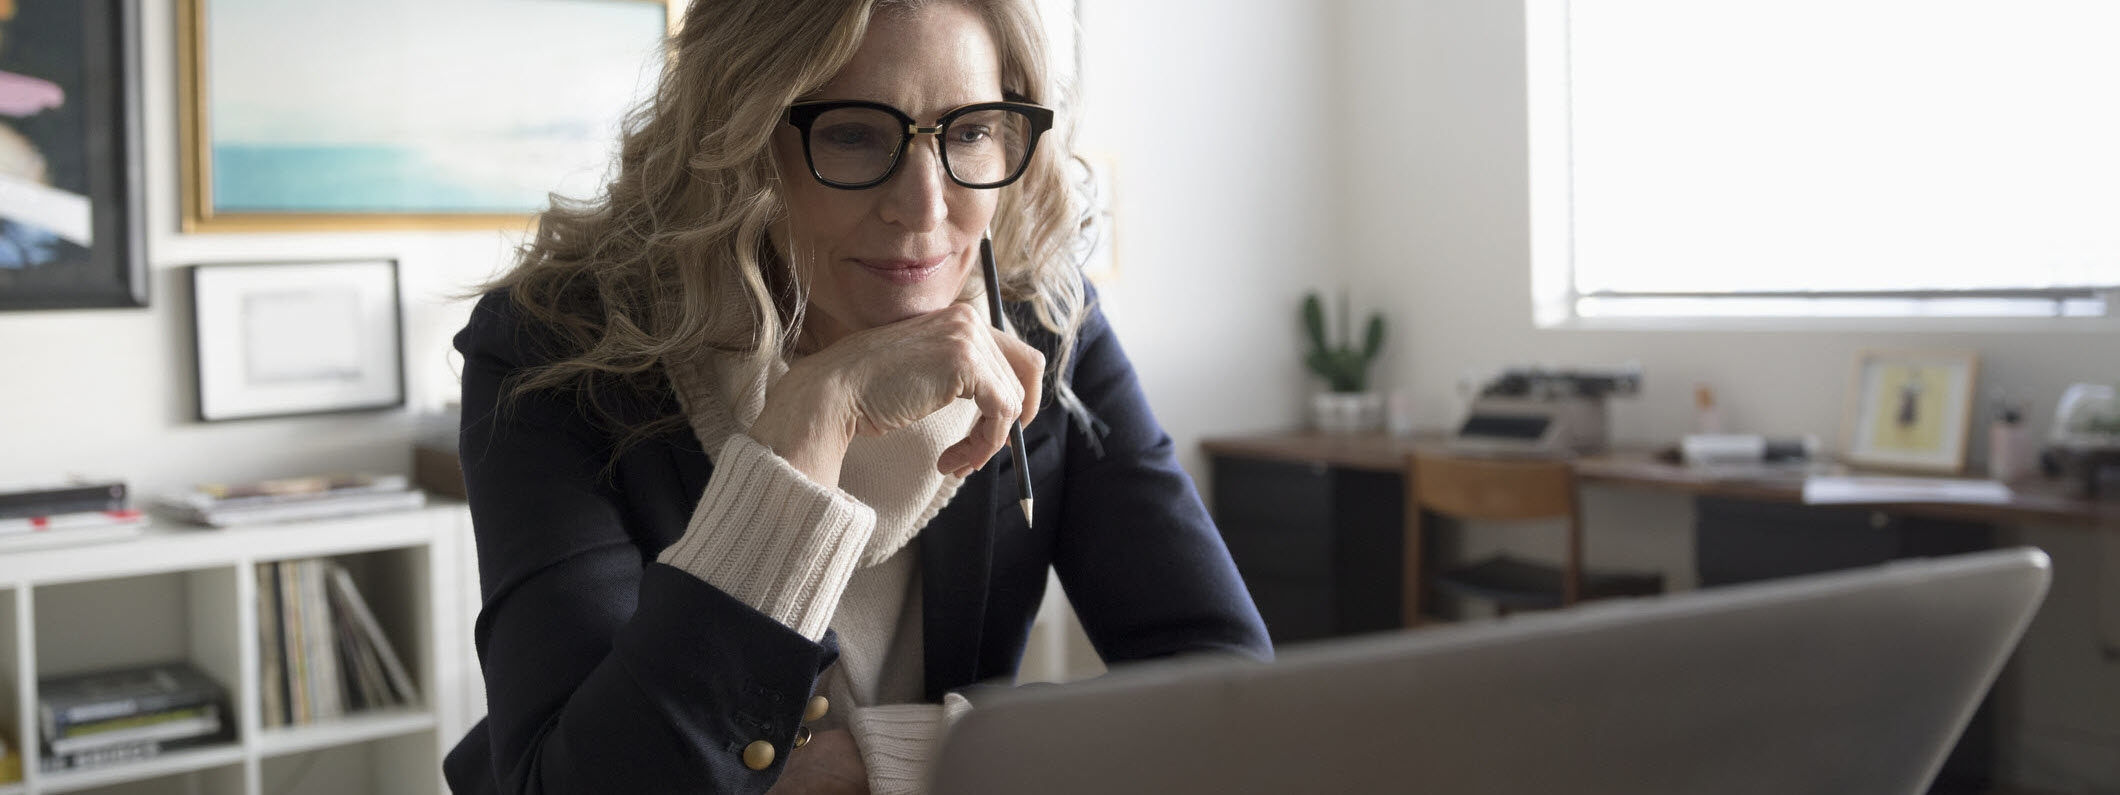 A woman in an office staring intently at her laptop on the desk in front of her.